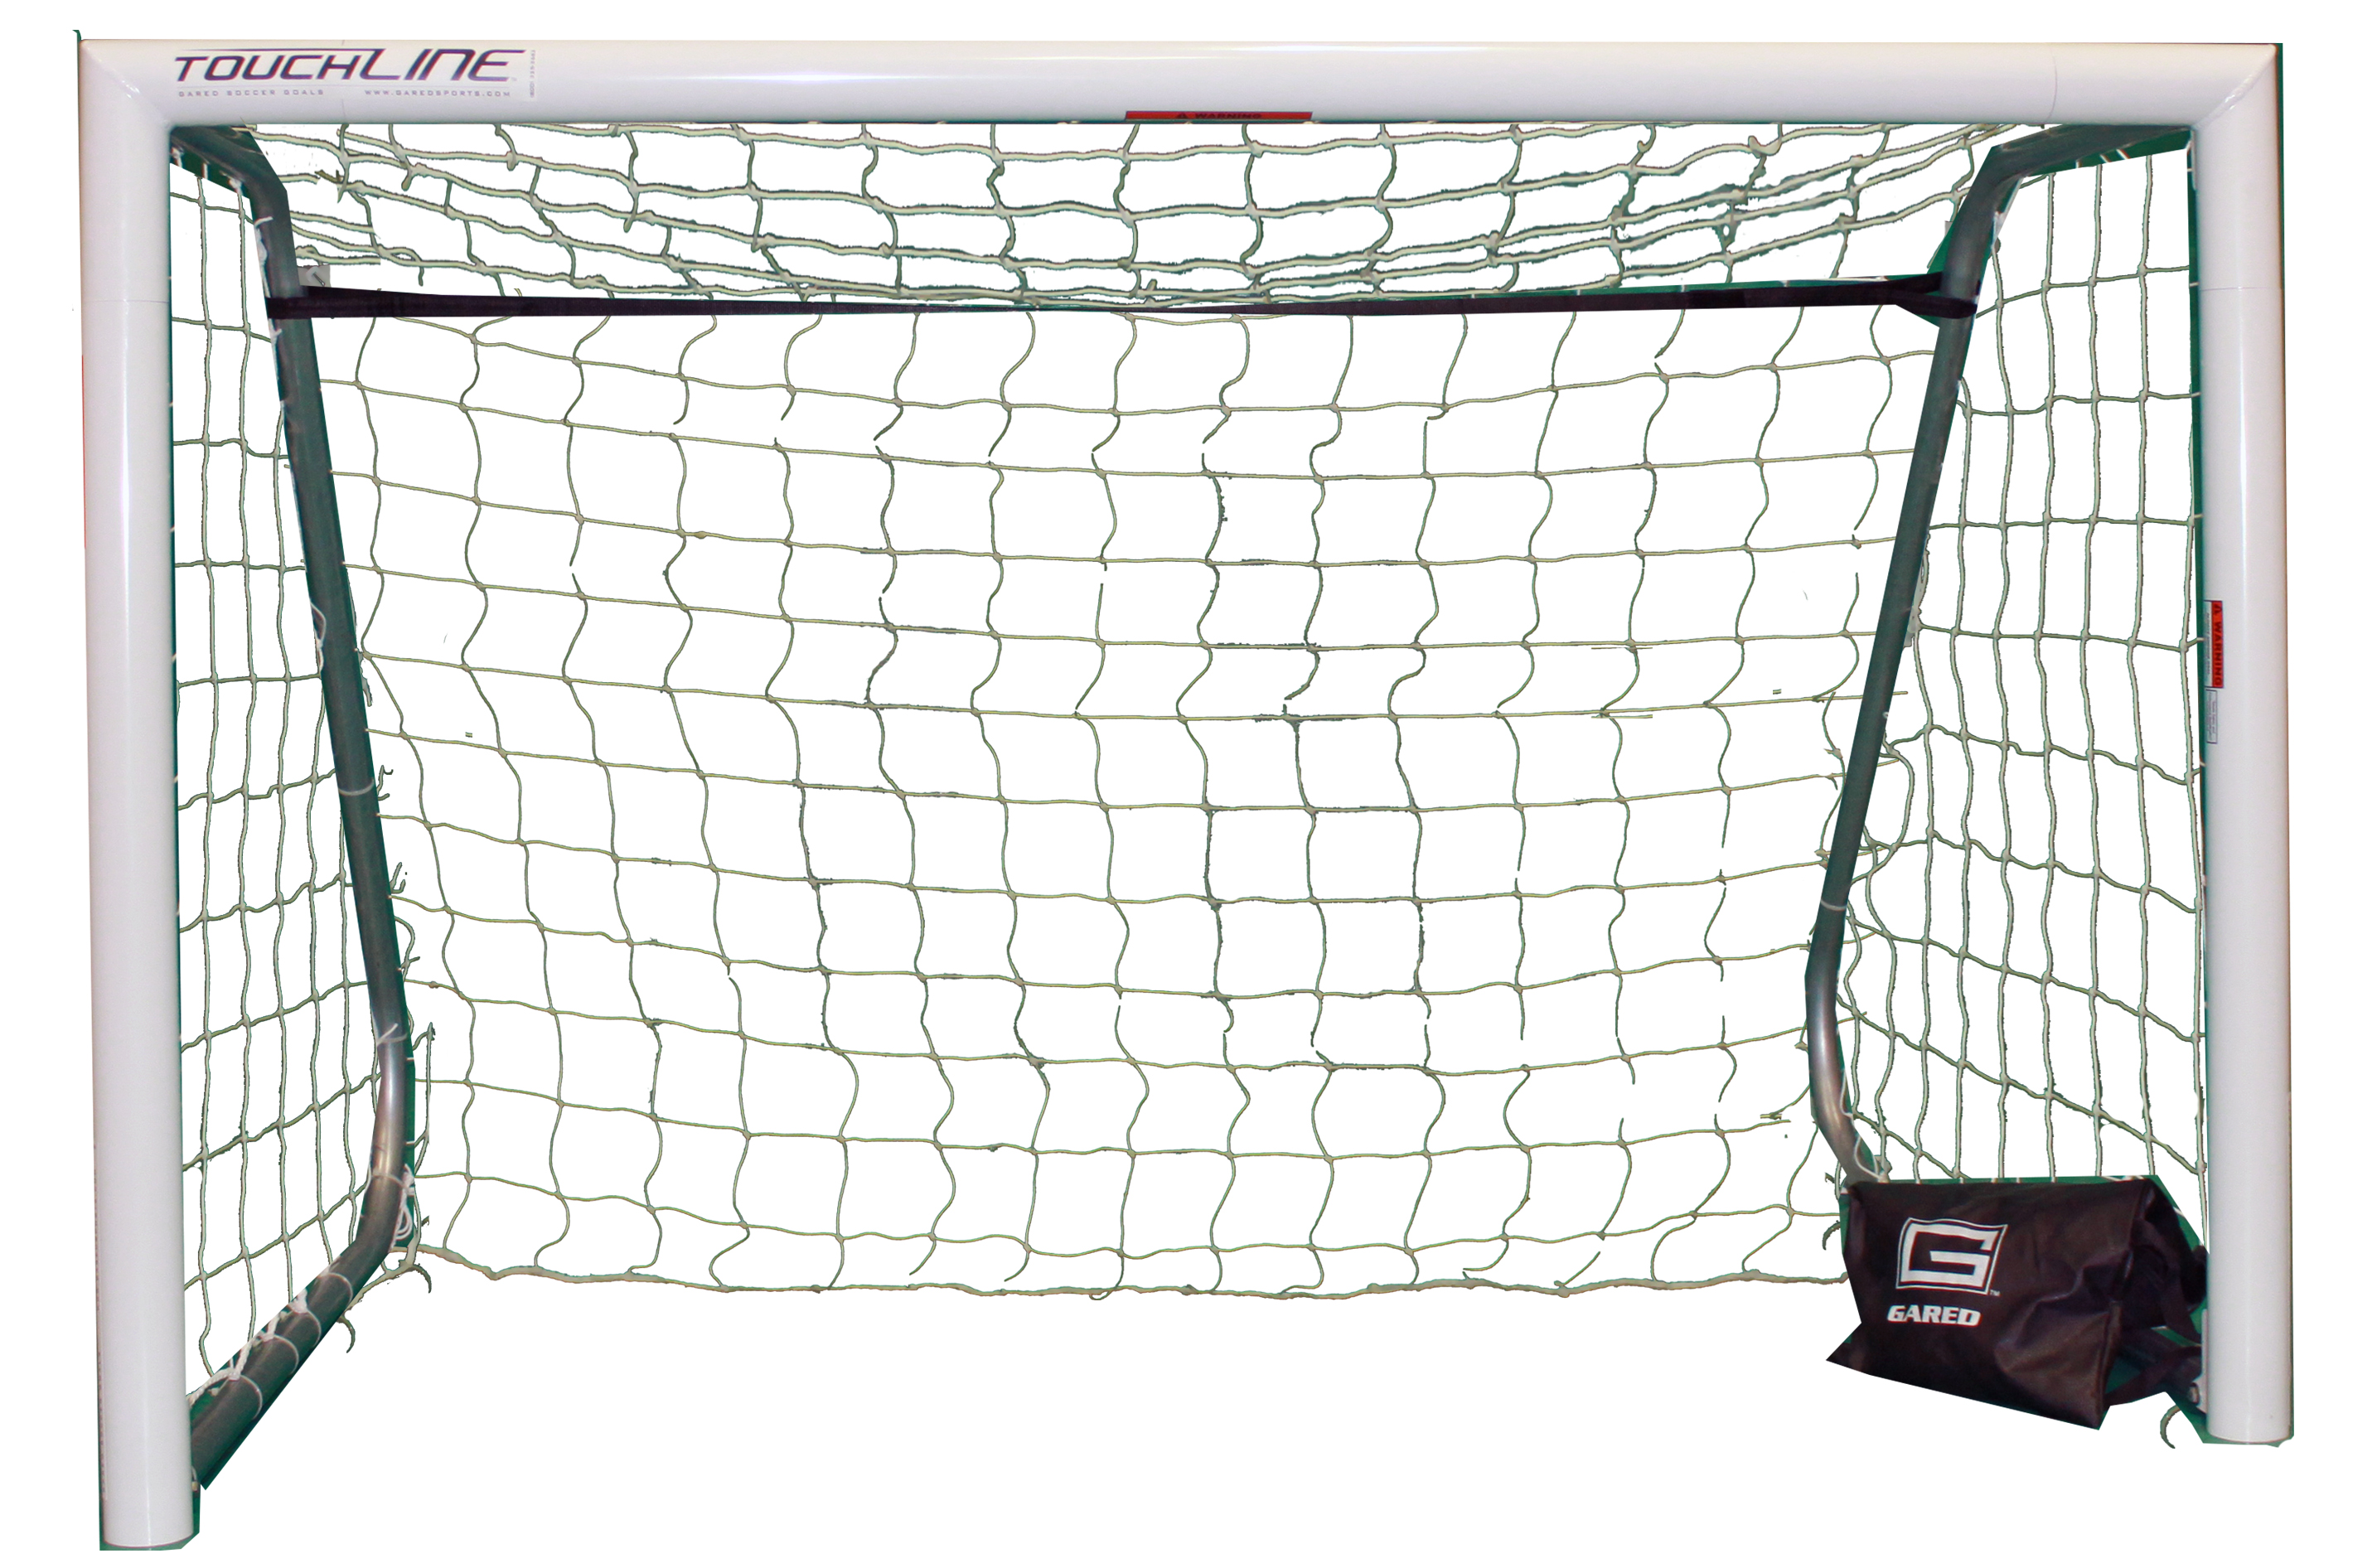 377ea5215 Galactico Unpainted Recreational Soccer Goal, 6' x 12'. View. View